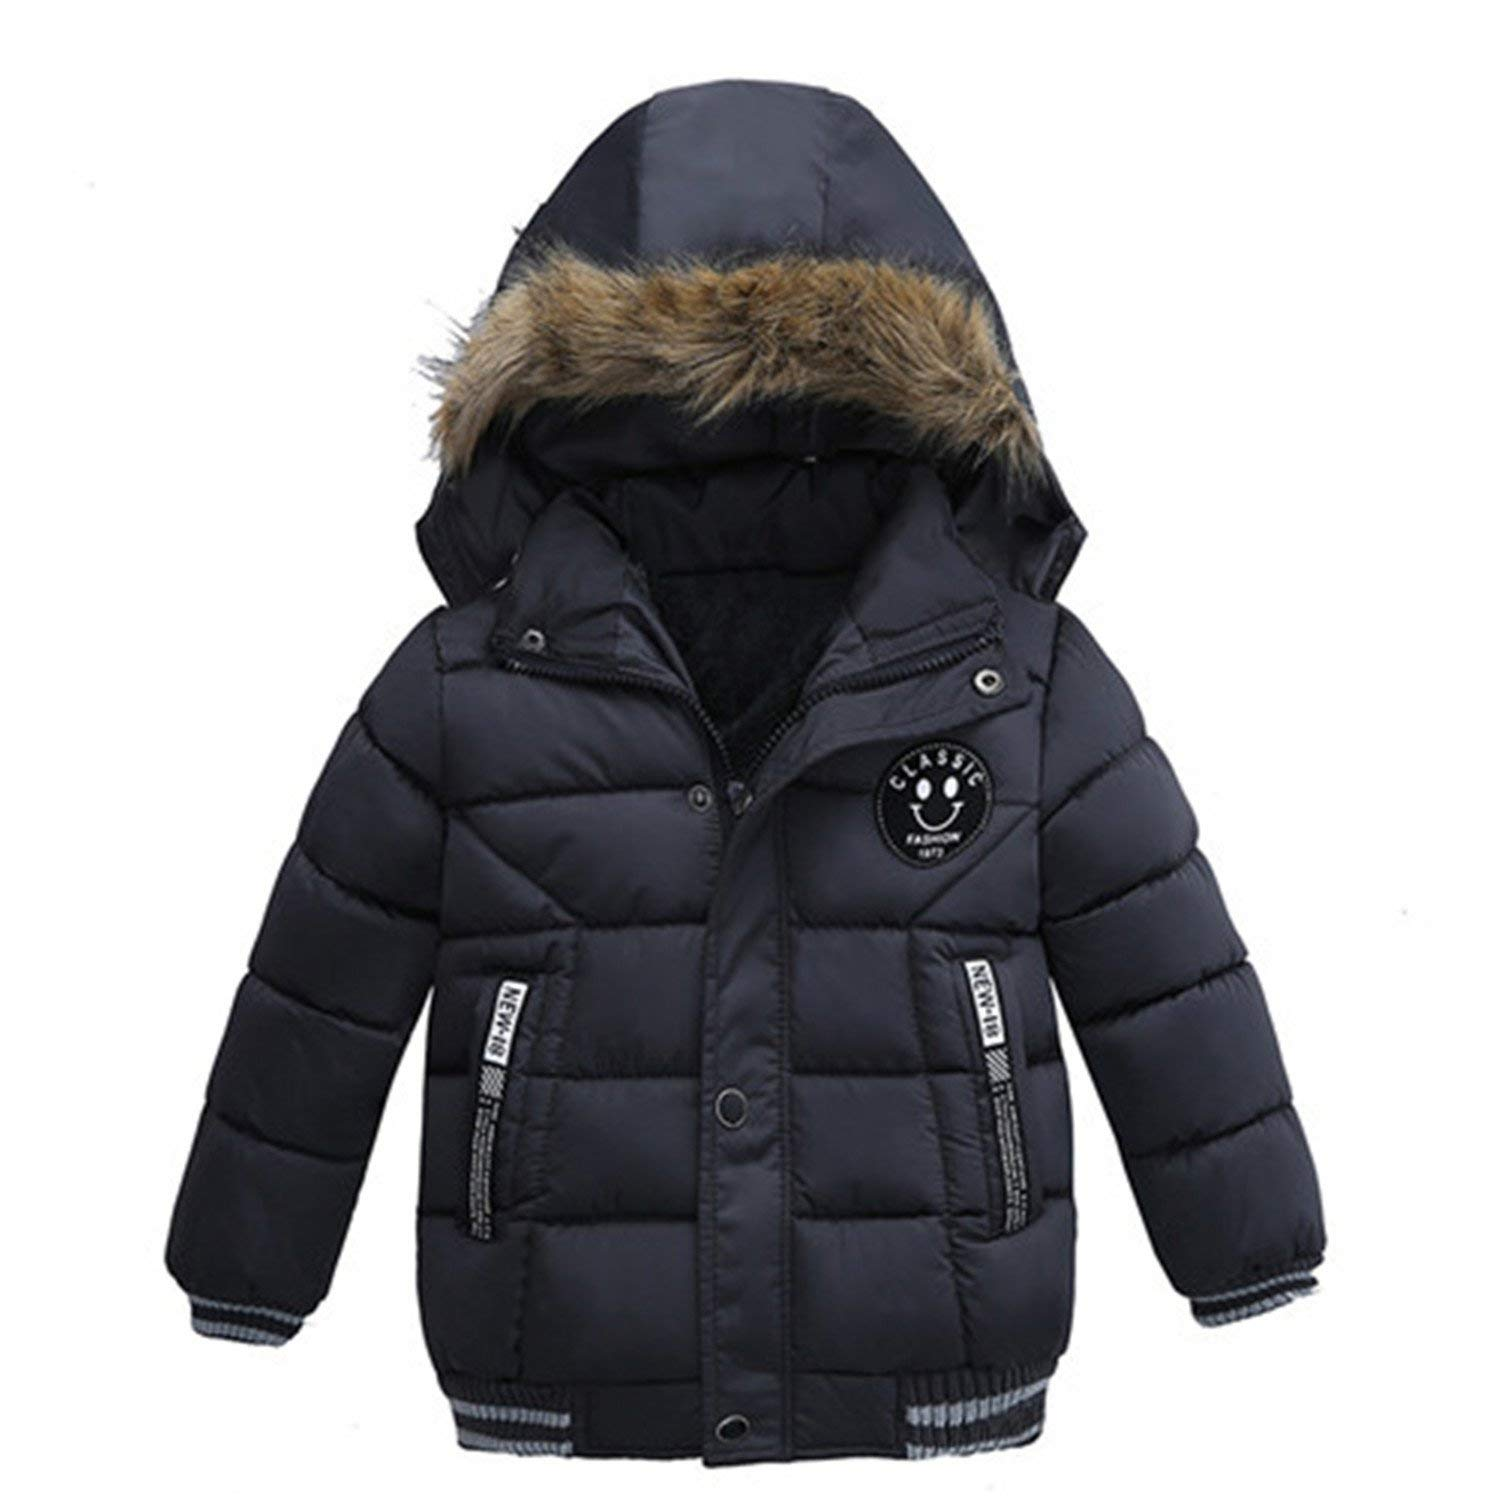 16d1991bb Get Quotations · Mofgr Baby Winter Coat Kids Warm Winter Outerwear Hooded  Children Down Jackets Cotton Coat